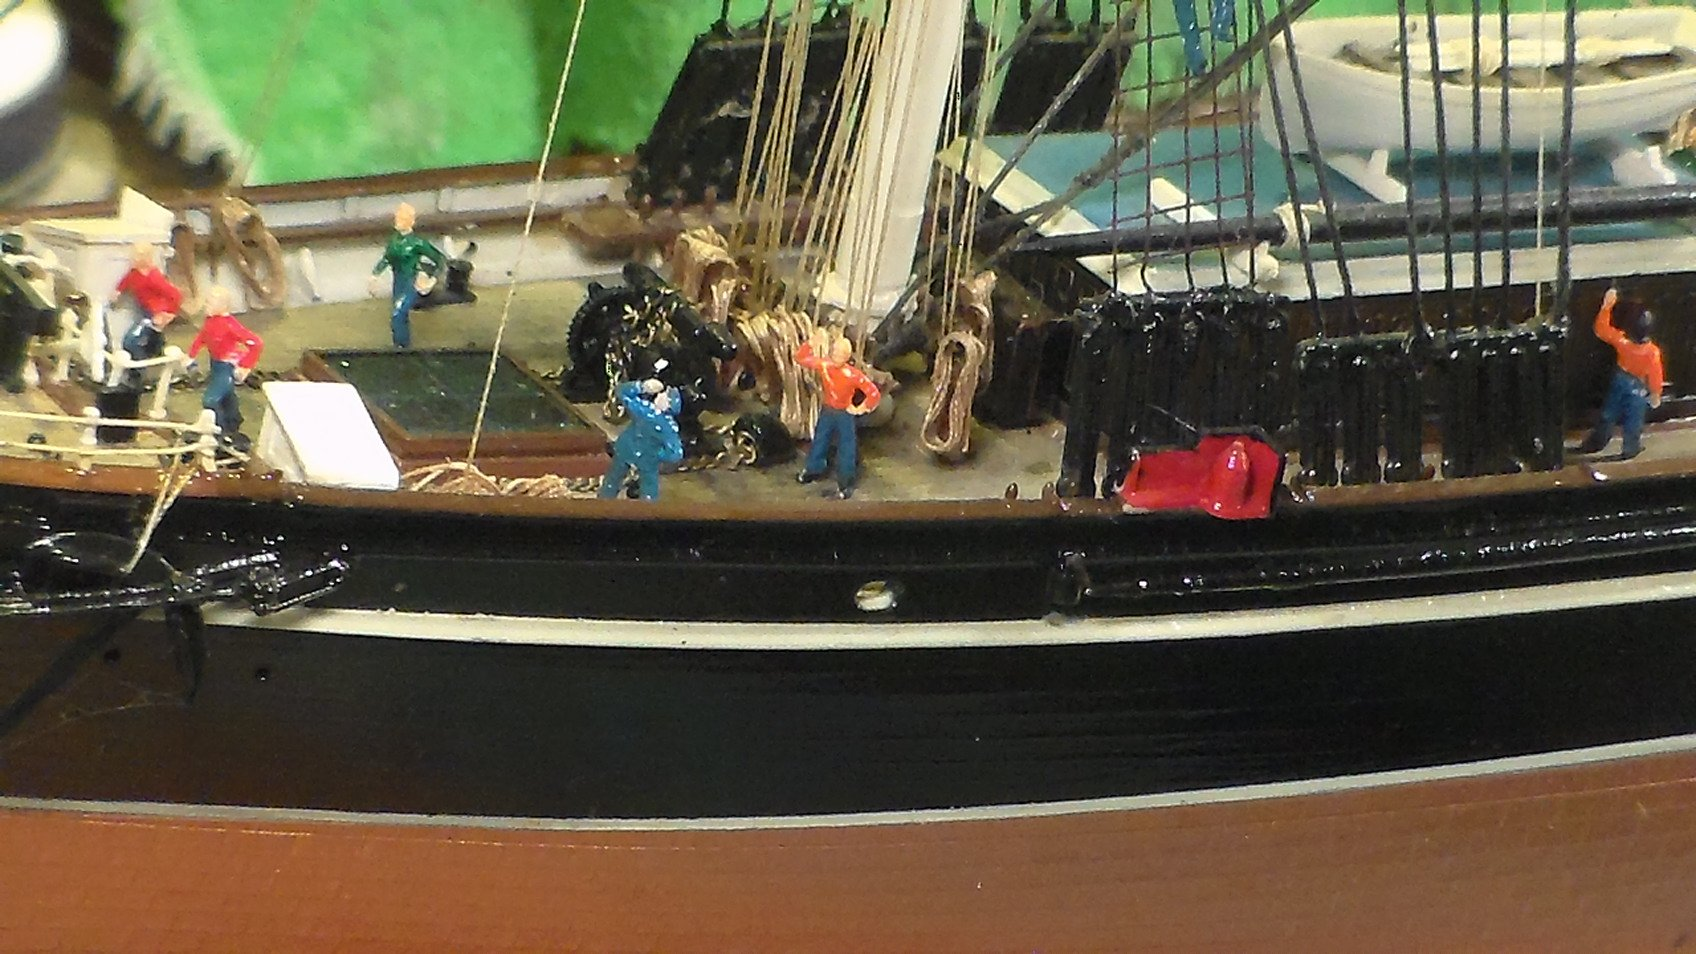 Cutty Sark by deckape - FINISHED - Revell - 1/96 - 1959 - Build Logs